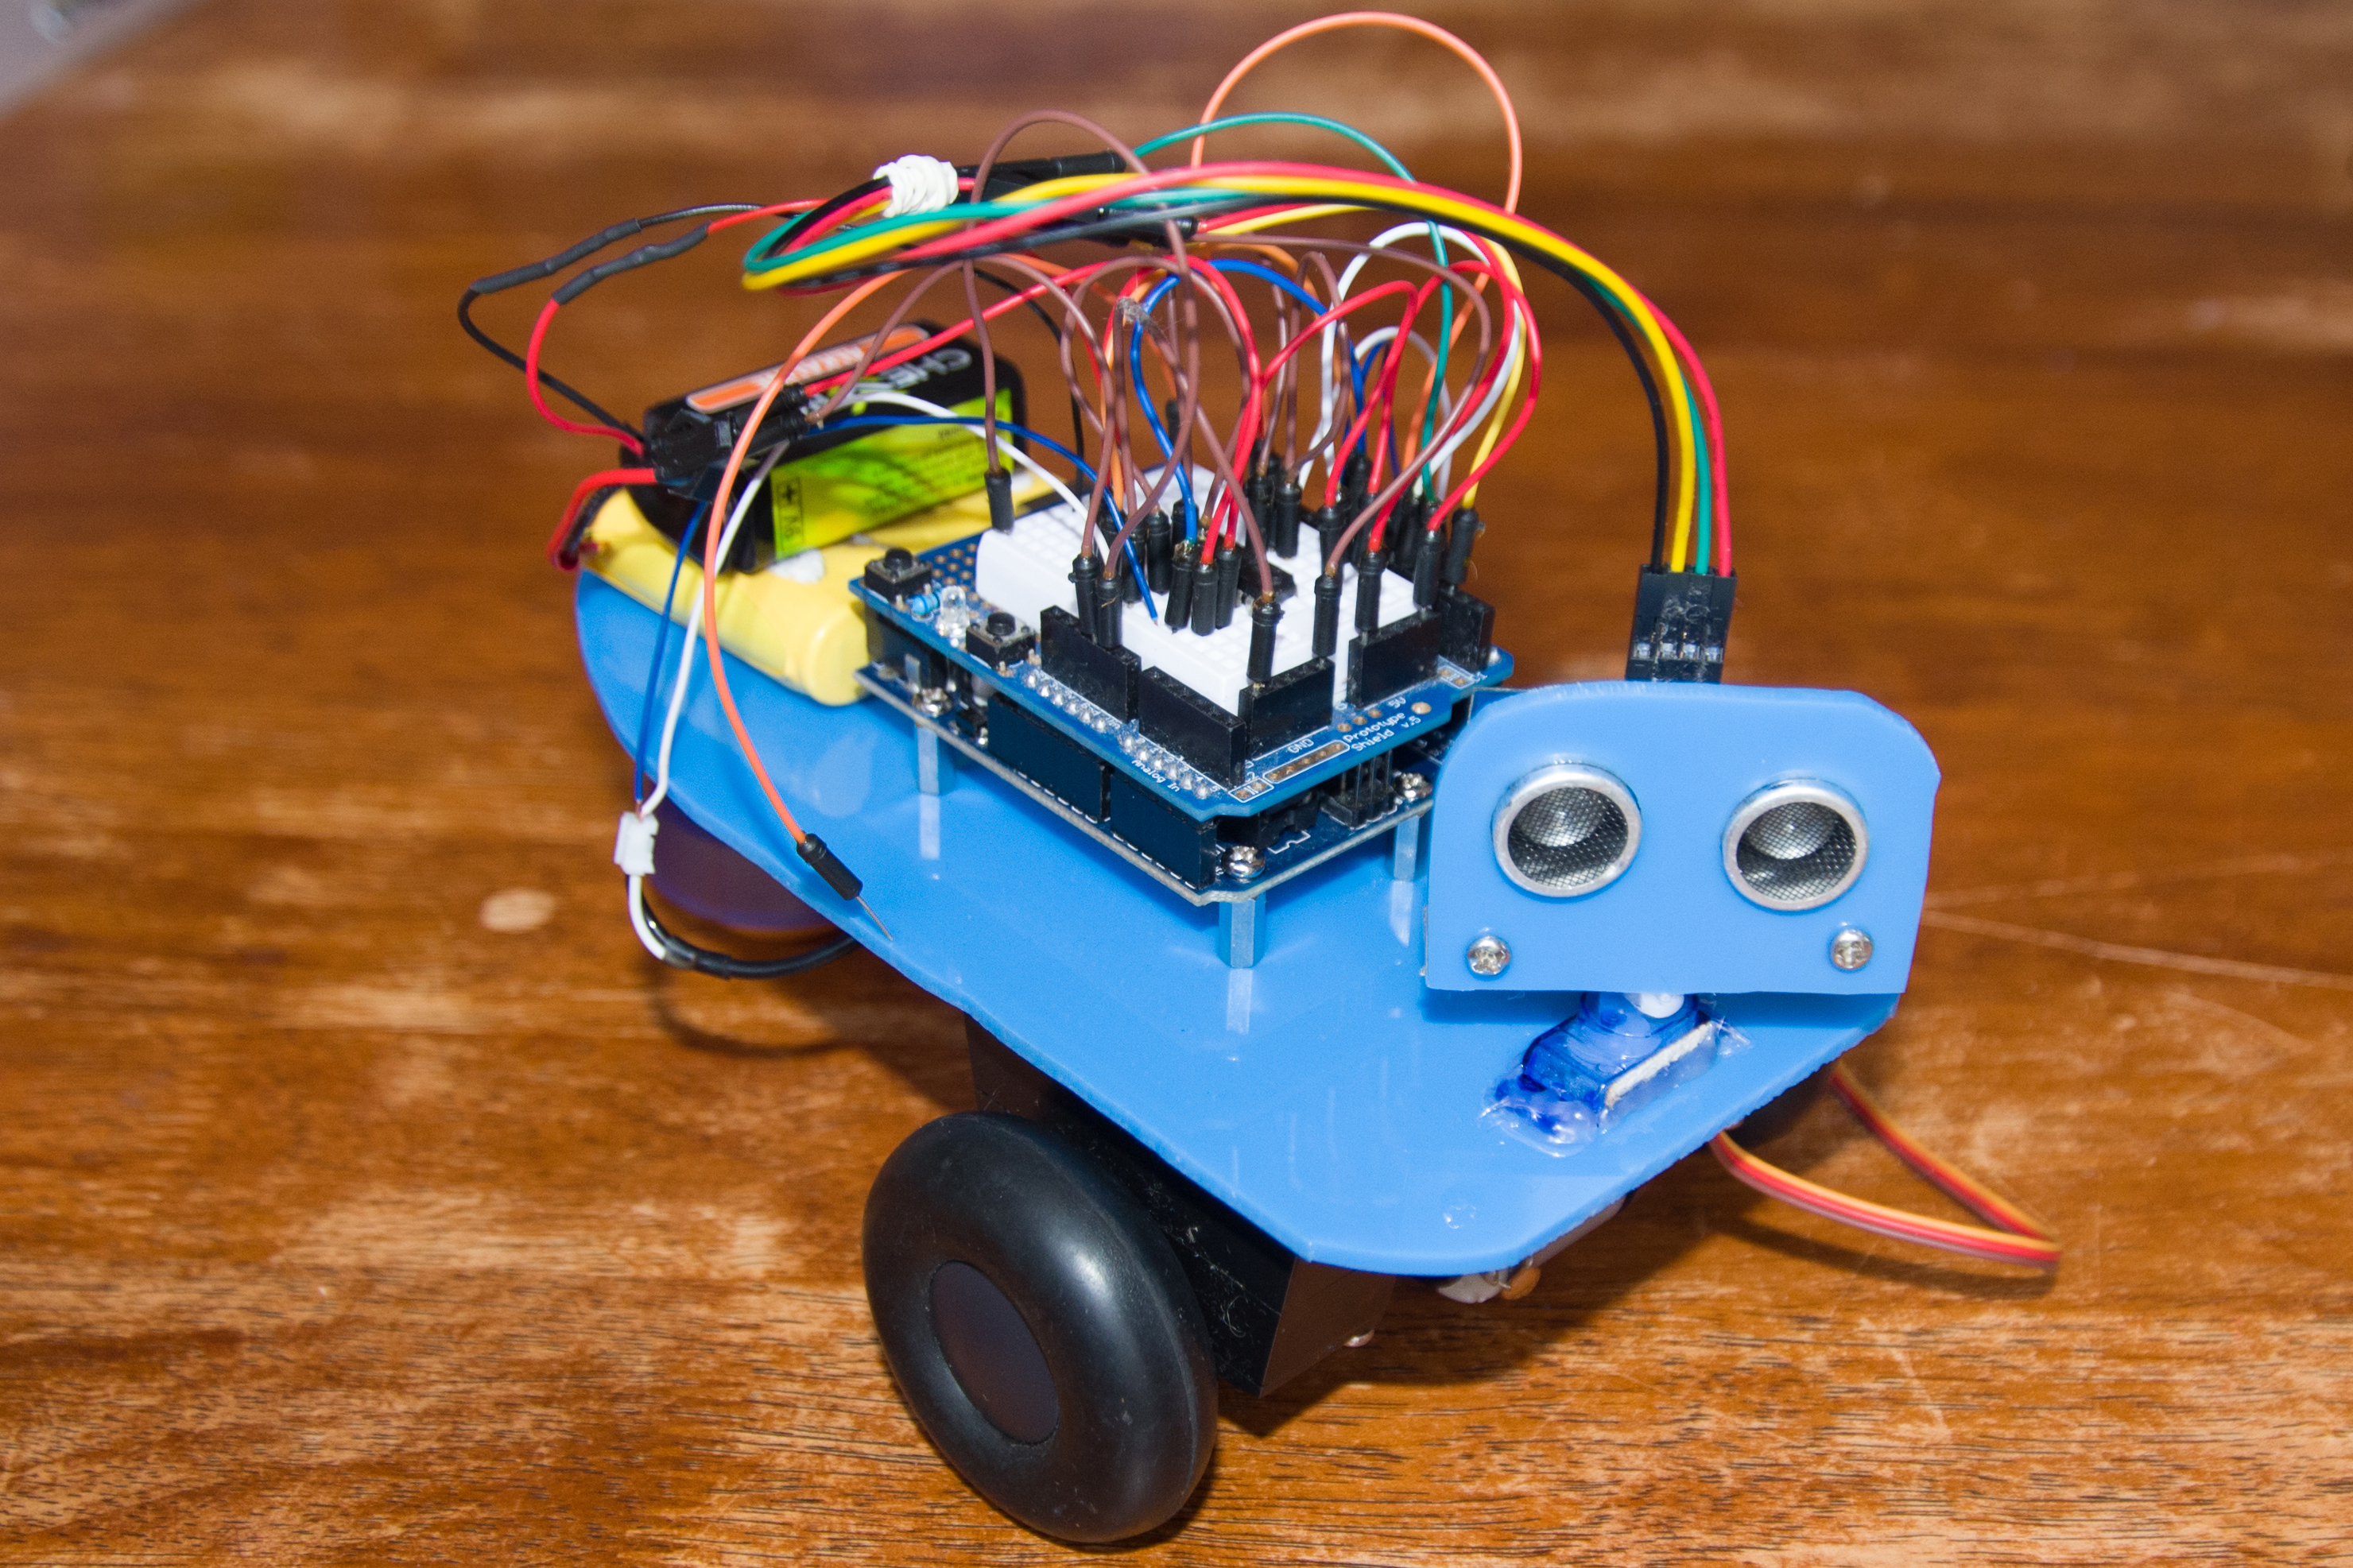 James - Your first Arduino Robot